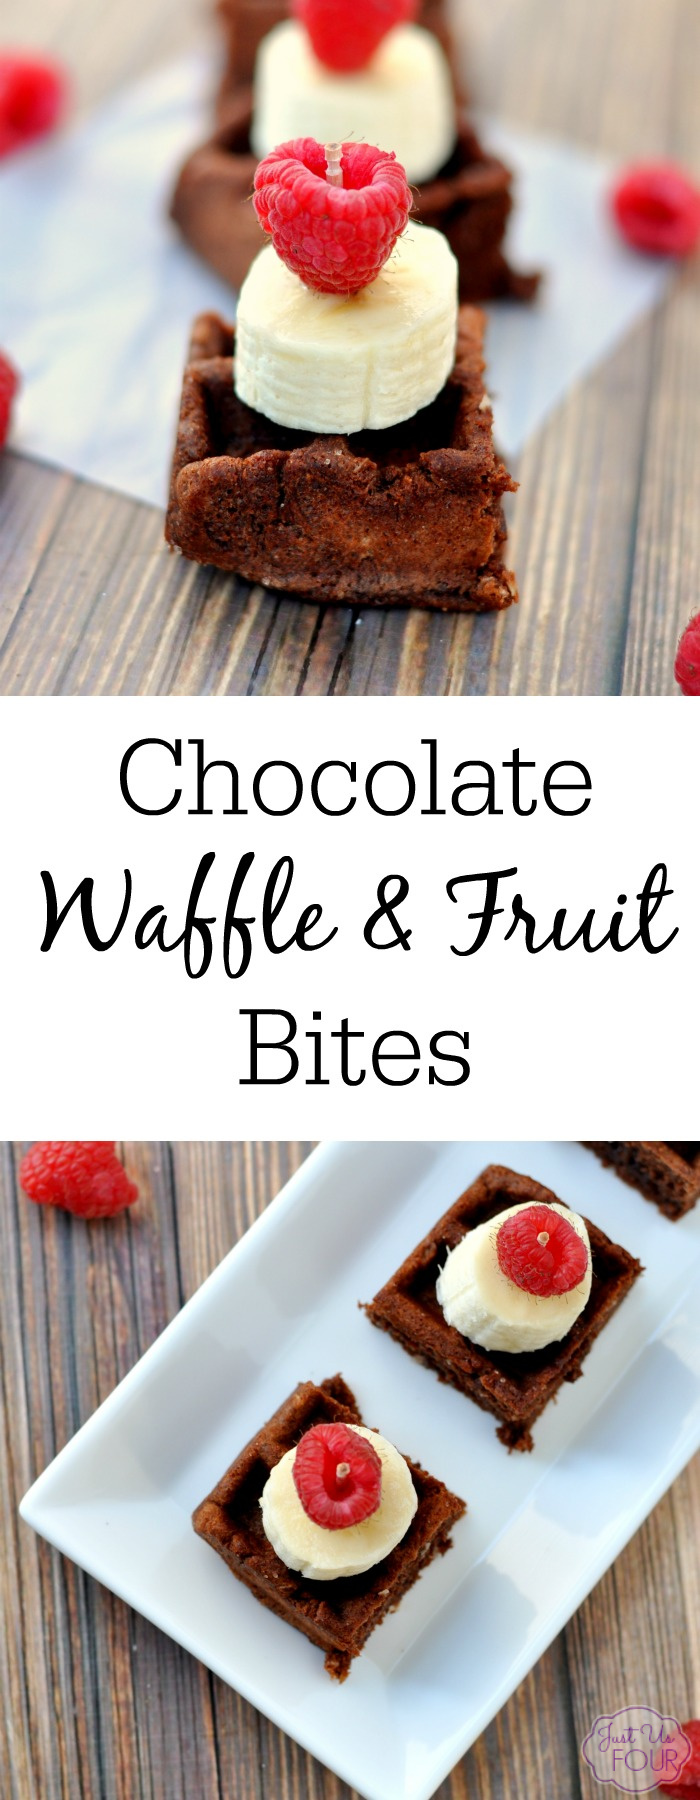 Mini Chocolate Waffle and Fruit bites are the perfect breakfast or snack for the kids and adults too!